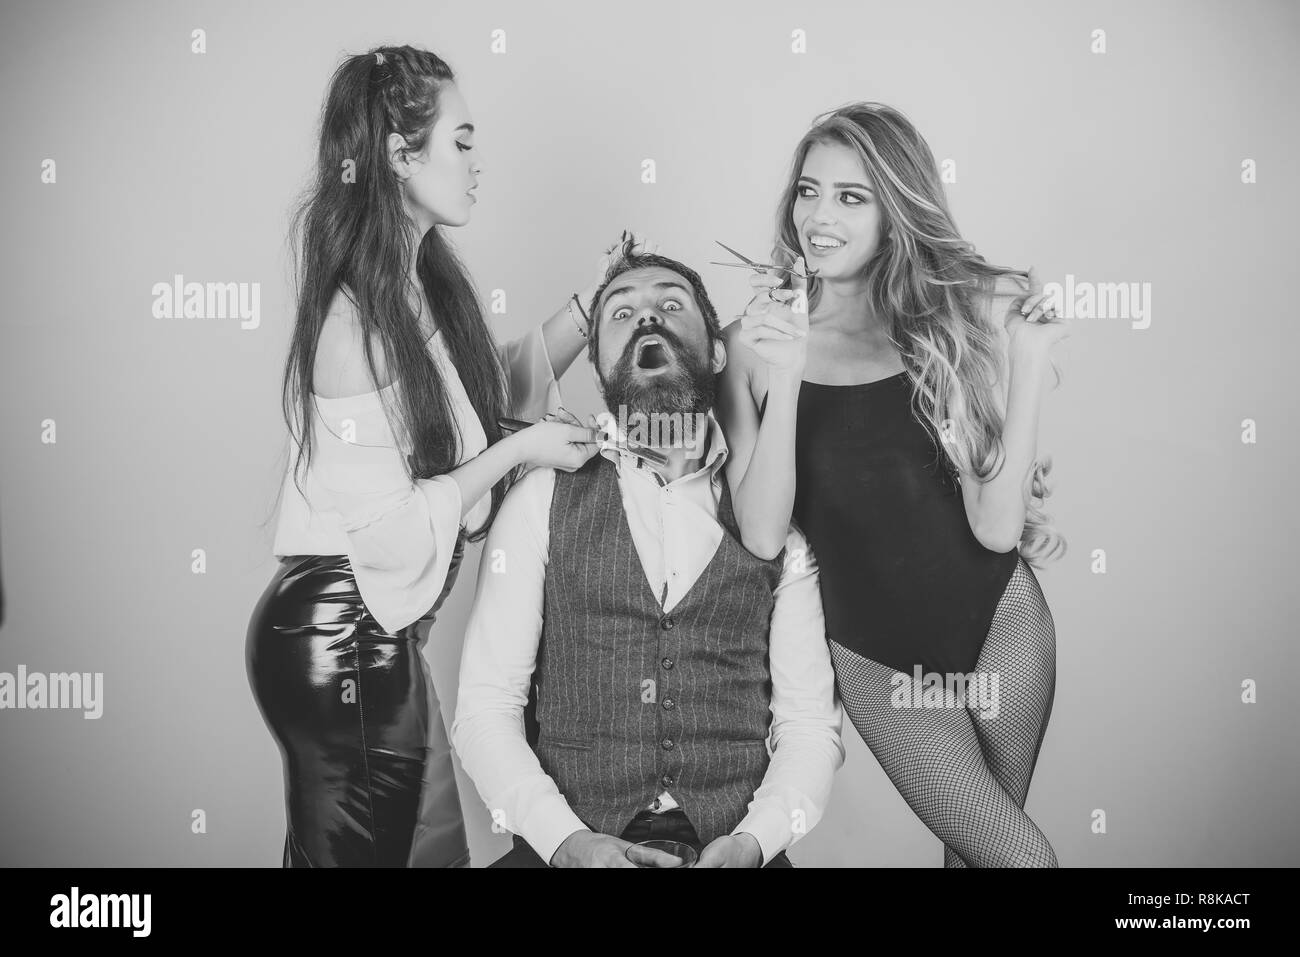 female hairdresser is cutting hair of bearded man - Stock Image